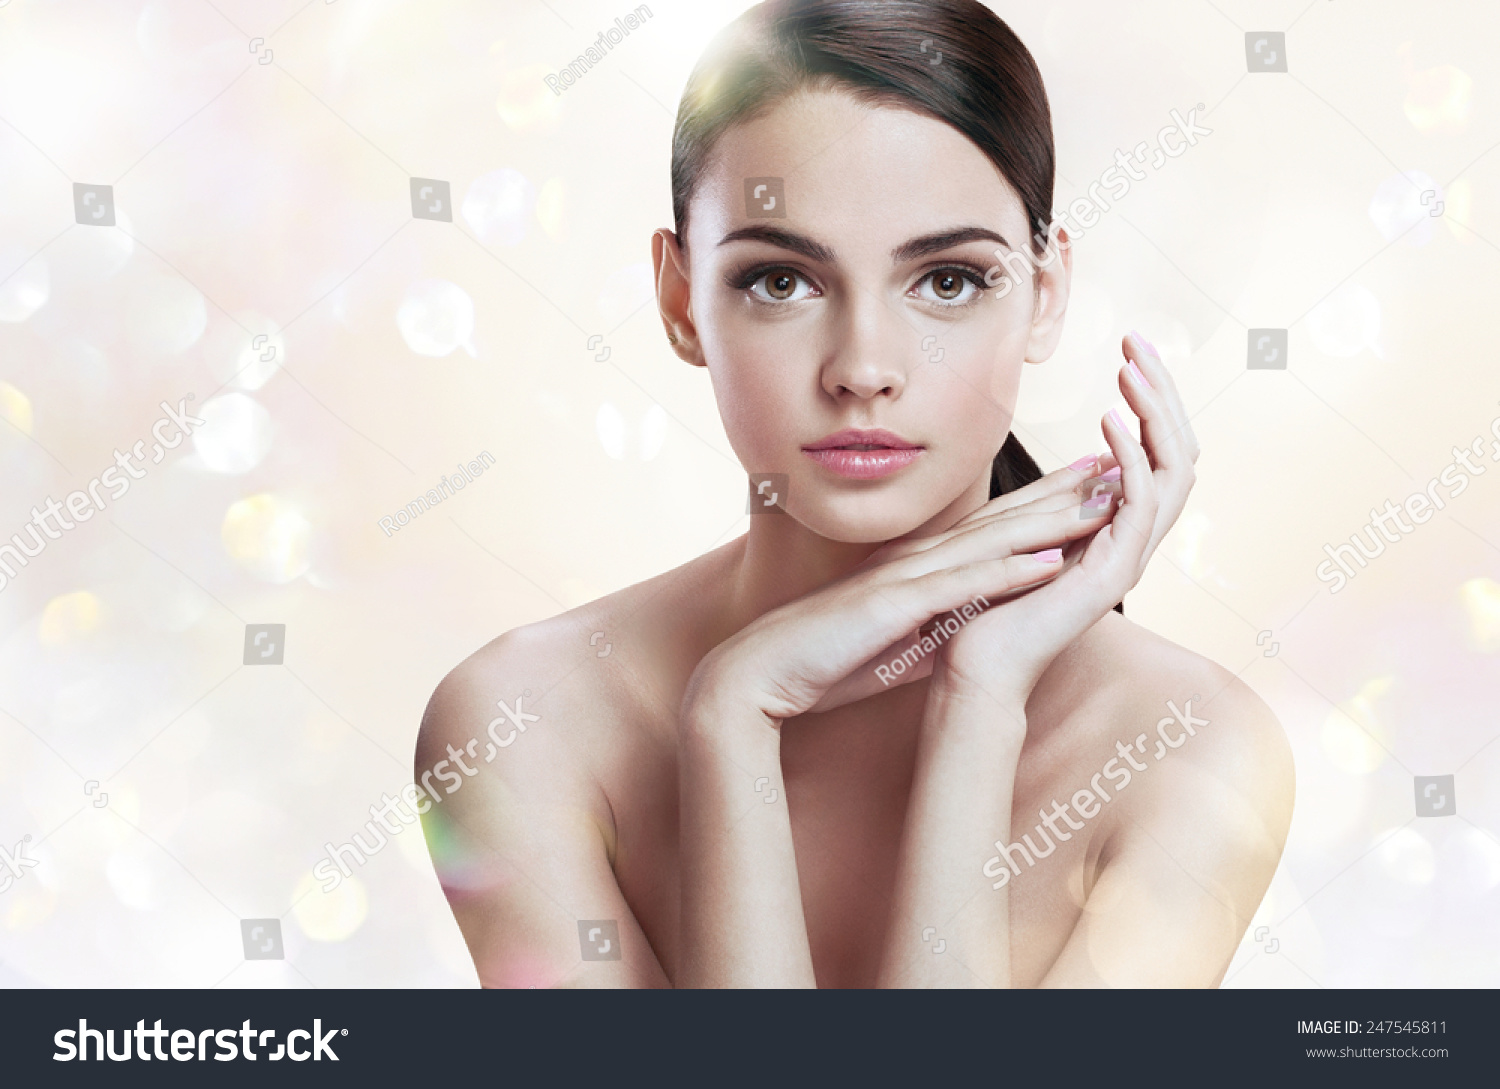 Charming young lady perfect makeup skin stock photo 247545811 shutterstock - Charming teenage girls image ...